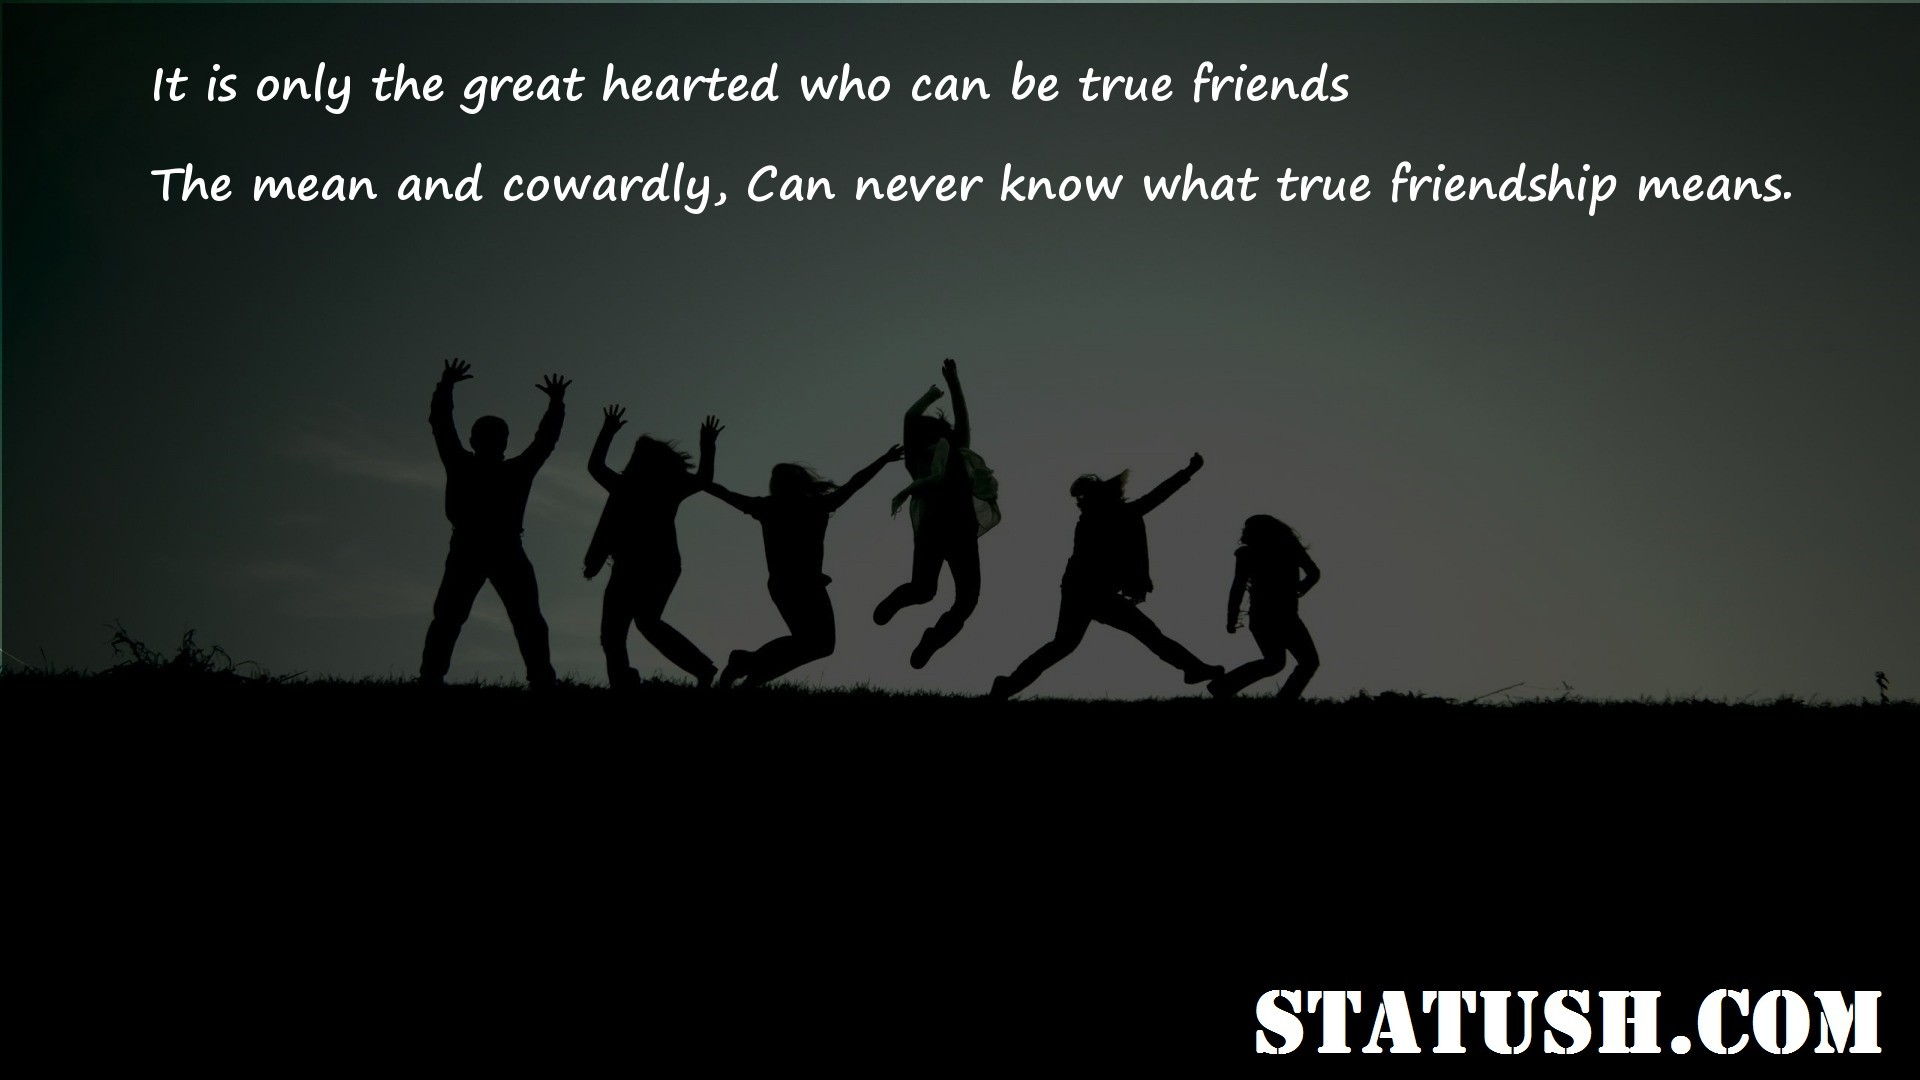 It is only the great hearted who can be true friends